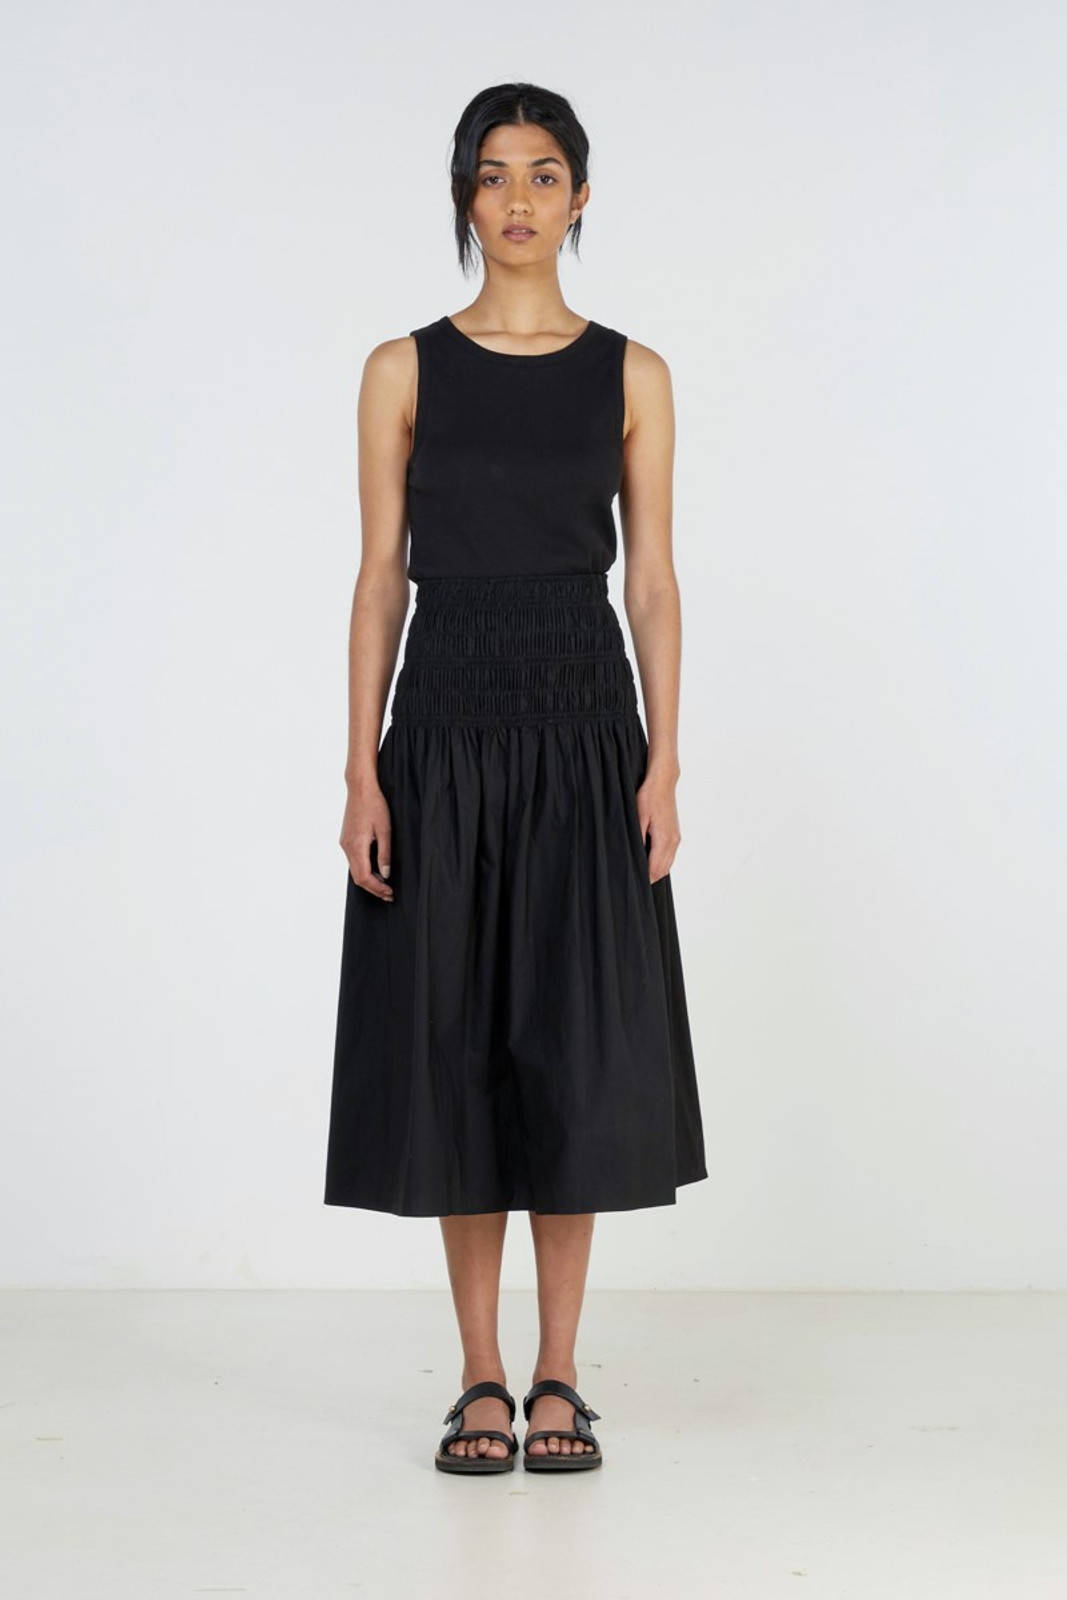 Elka Collective Theory Skirt Black  2